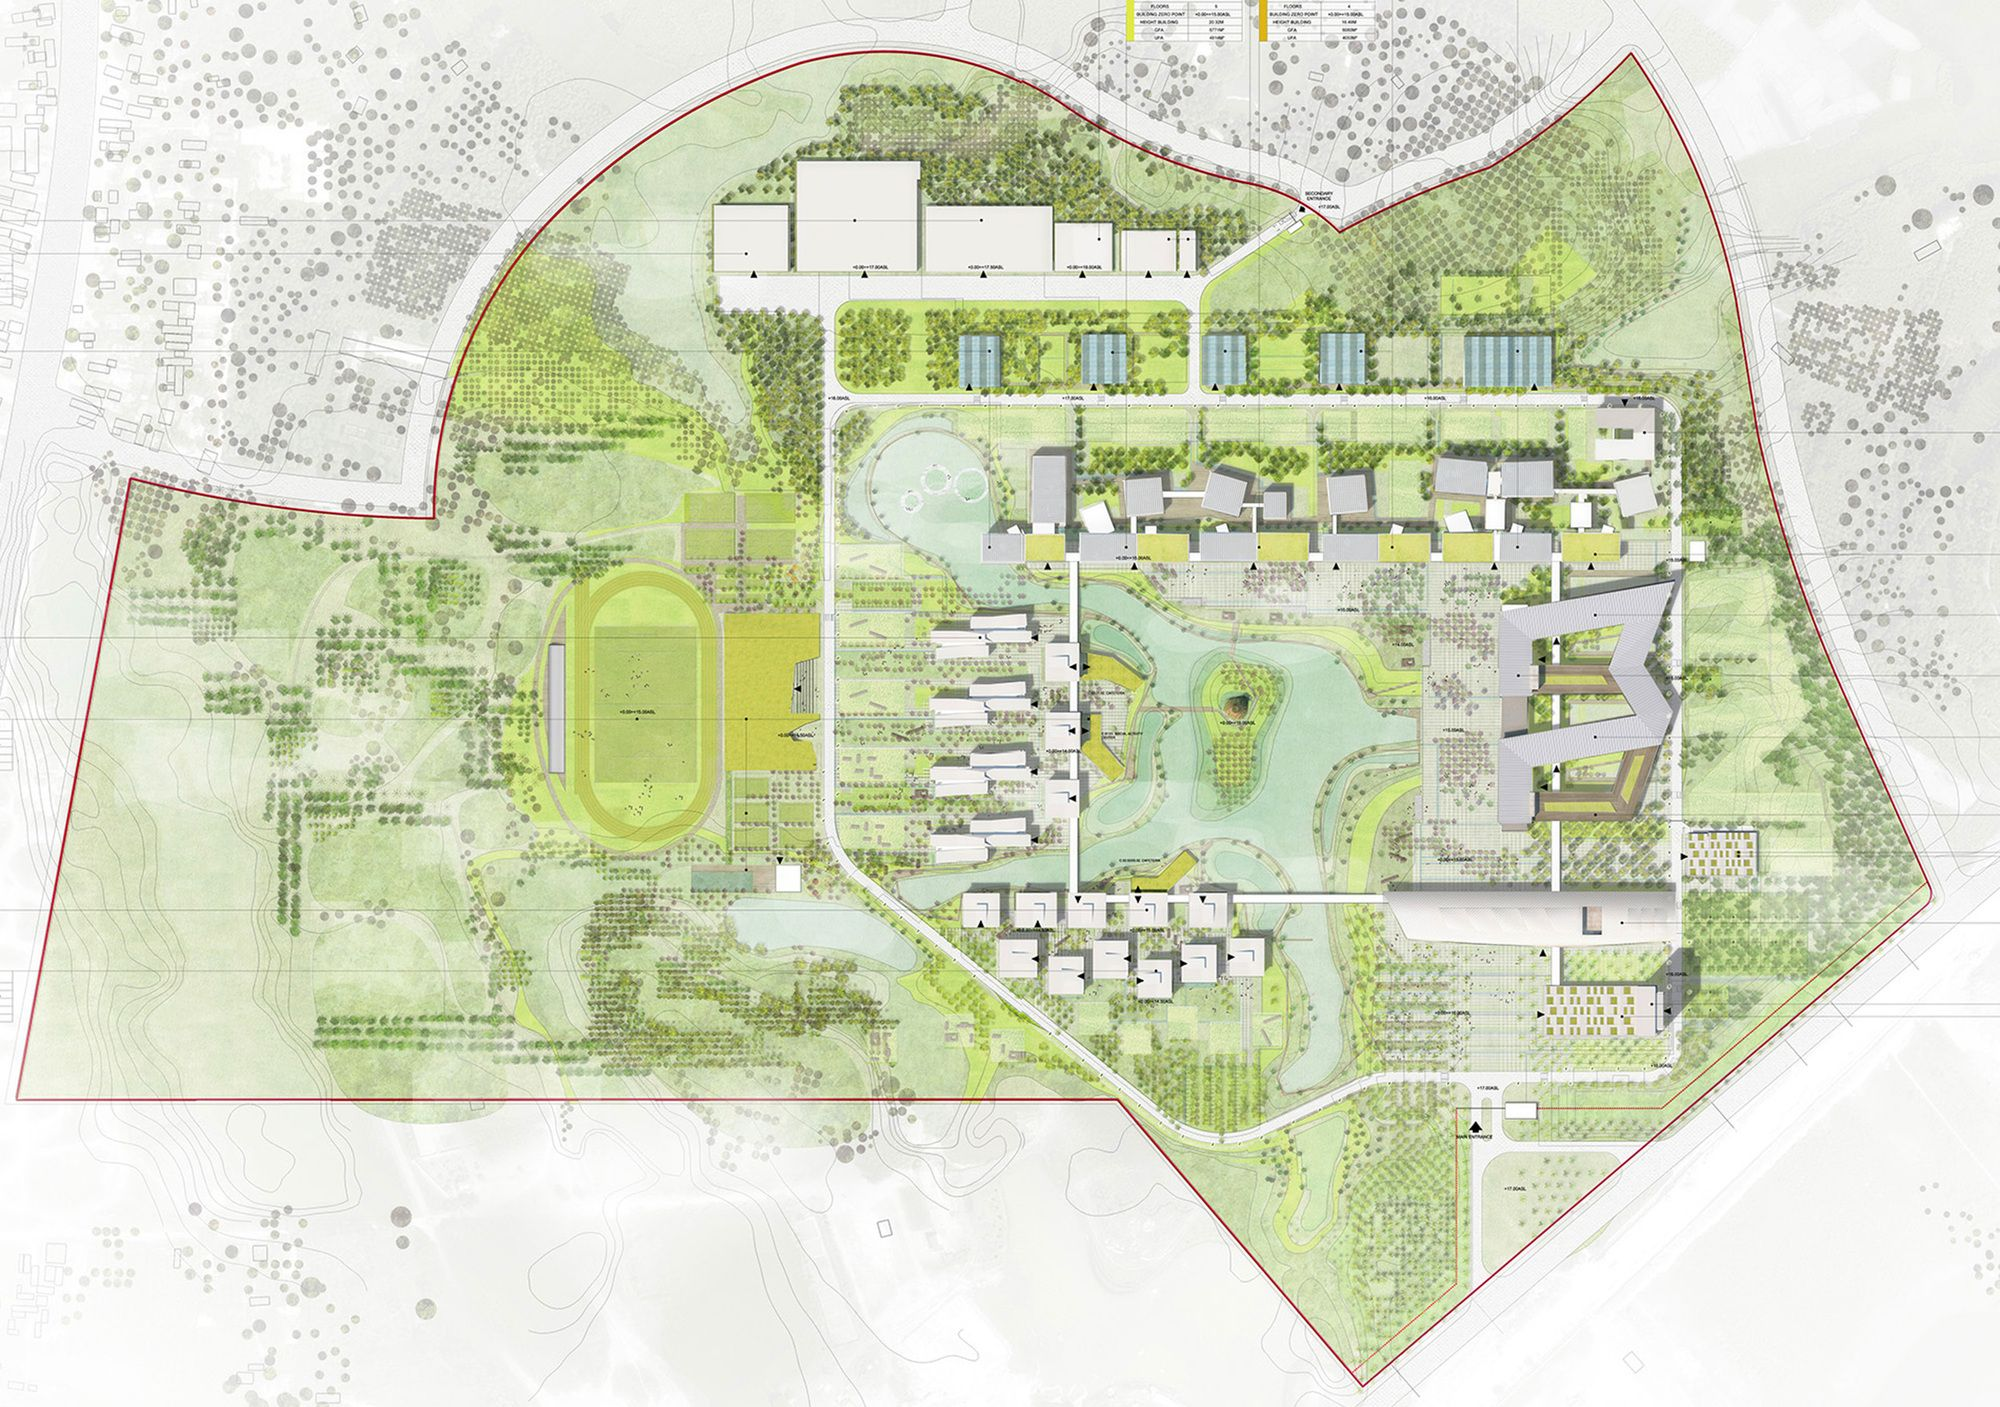 Gallery Of As Architecture Studio And Vha Architects Unveil Green University Campus Plan In Vietnam 11 University Campus University Architecture Campus Landscape Design